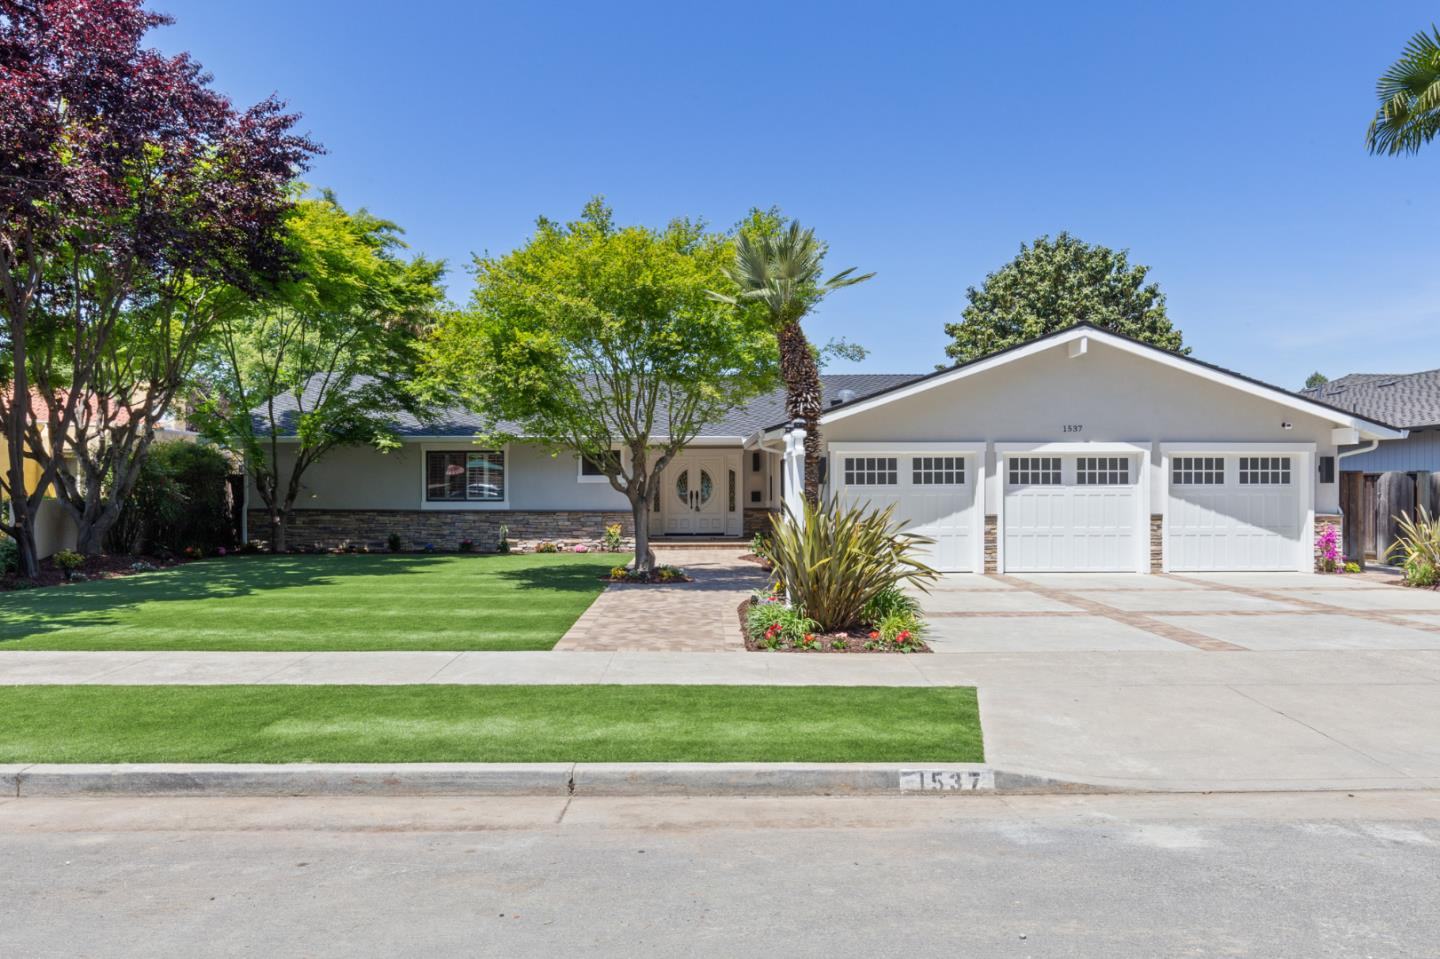 Property for sale at 1537 Dry Creek RD, San Jose,  California 95125